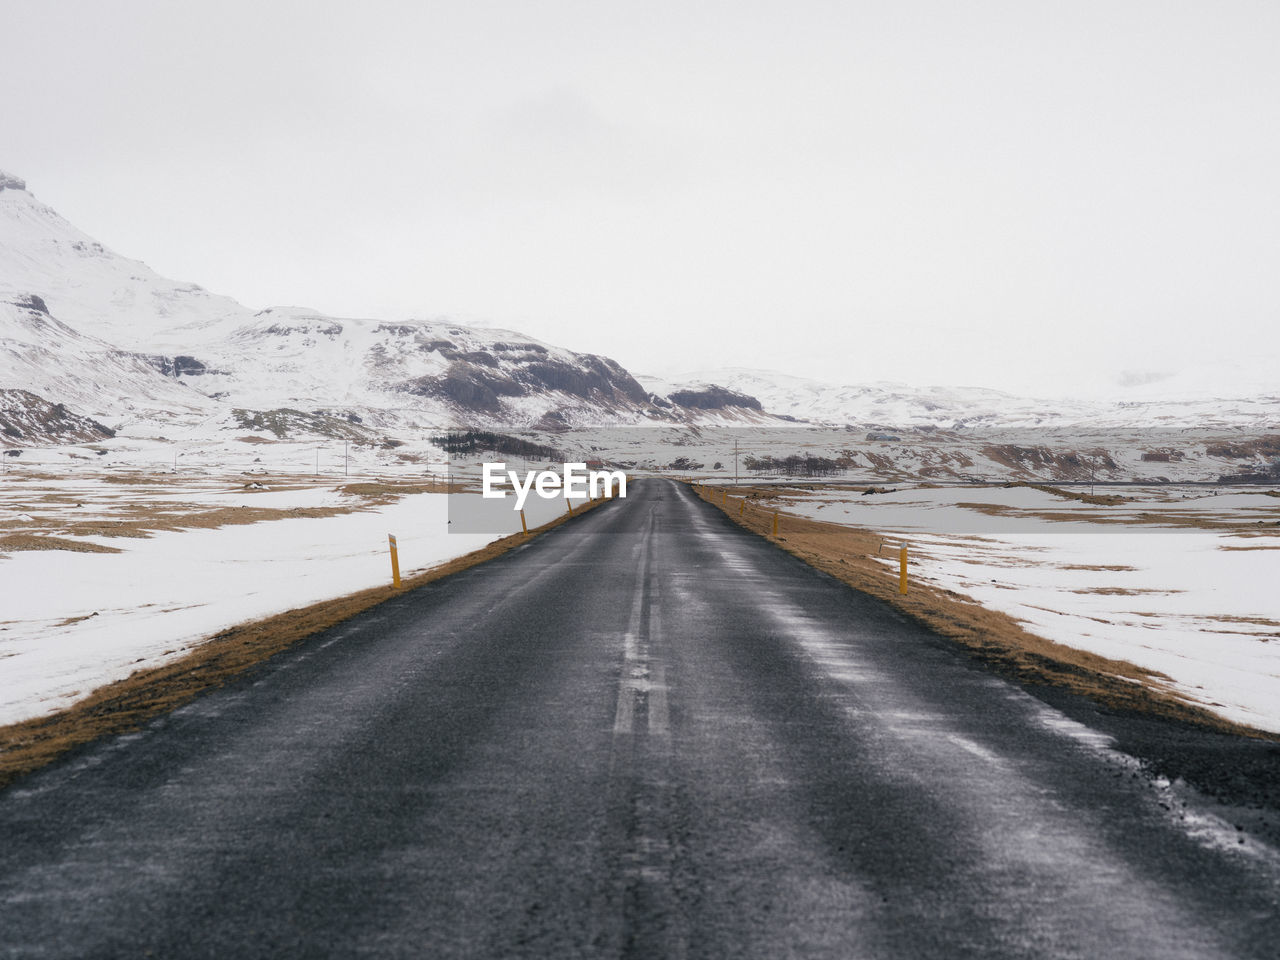 road, direction, the way forward, transportation, cold temperature, snow, winter, diminishing perspective, sky, mountain, scenics - nature, sign, vanishing point, nature, no people, beauty in nature, landscape, non-urban scene, environment, outdoors, snowcapped mountain, dividing line